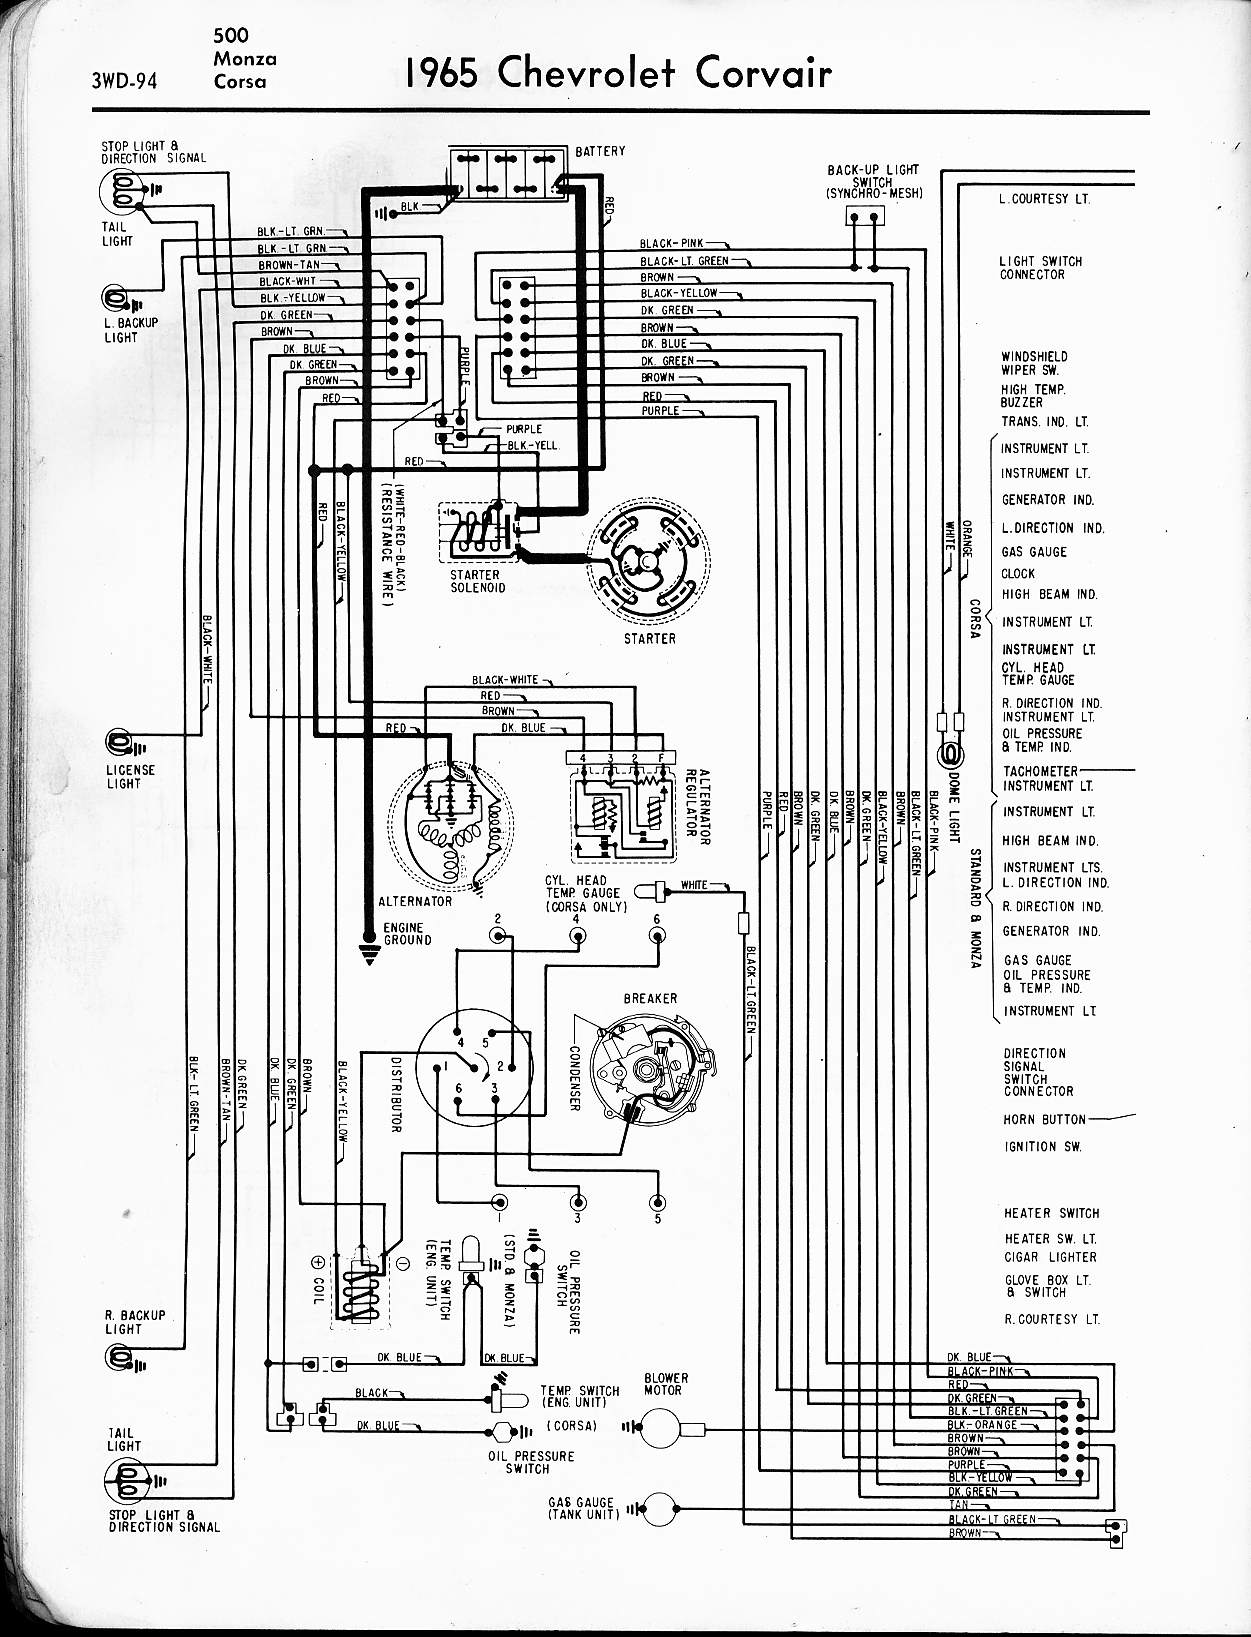 1968 chevy impala turn signal wiring diagram - 1985 gmc truck wiring diagram  - bobcate-s70.yenpancane.jeanjaures37.fr  wiring diagram resource